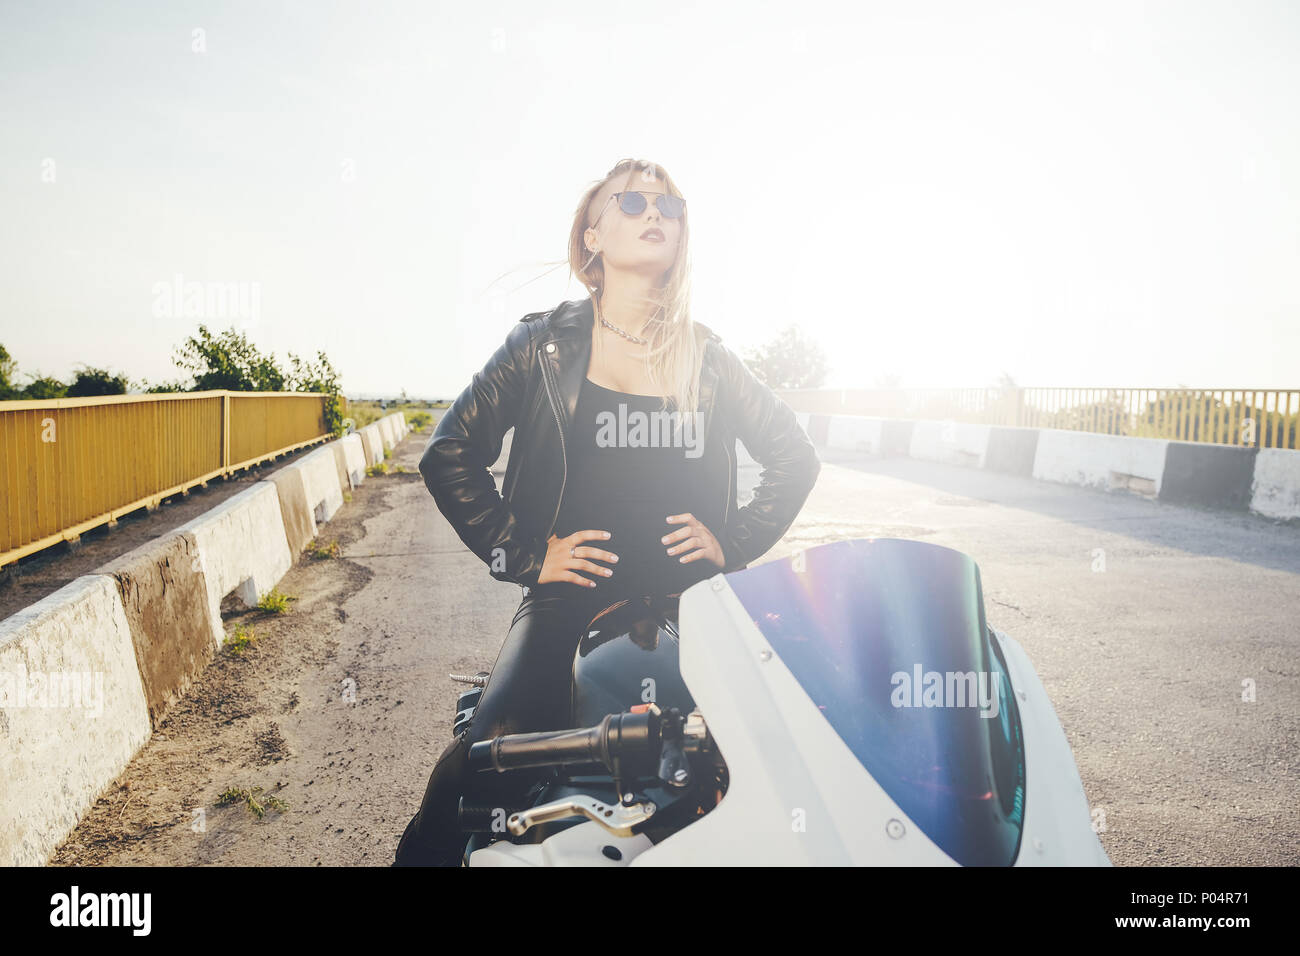 Biker woman looking interested to the sky  - Stock Image